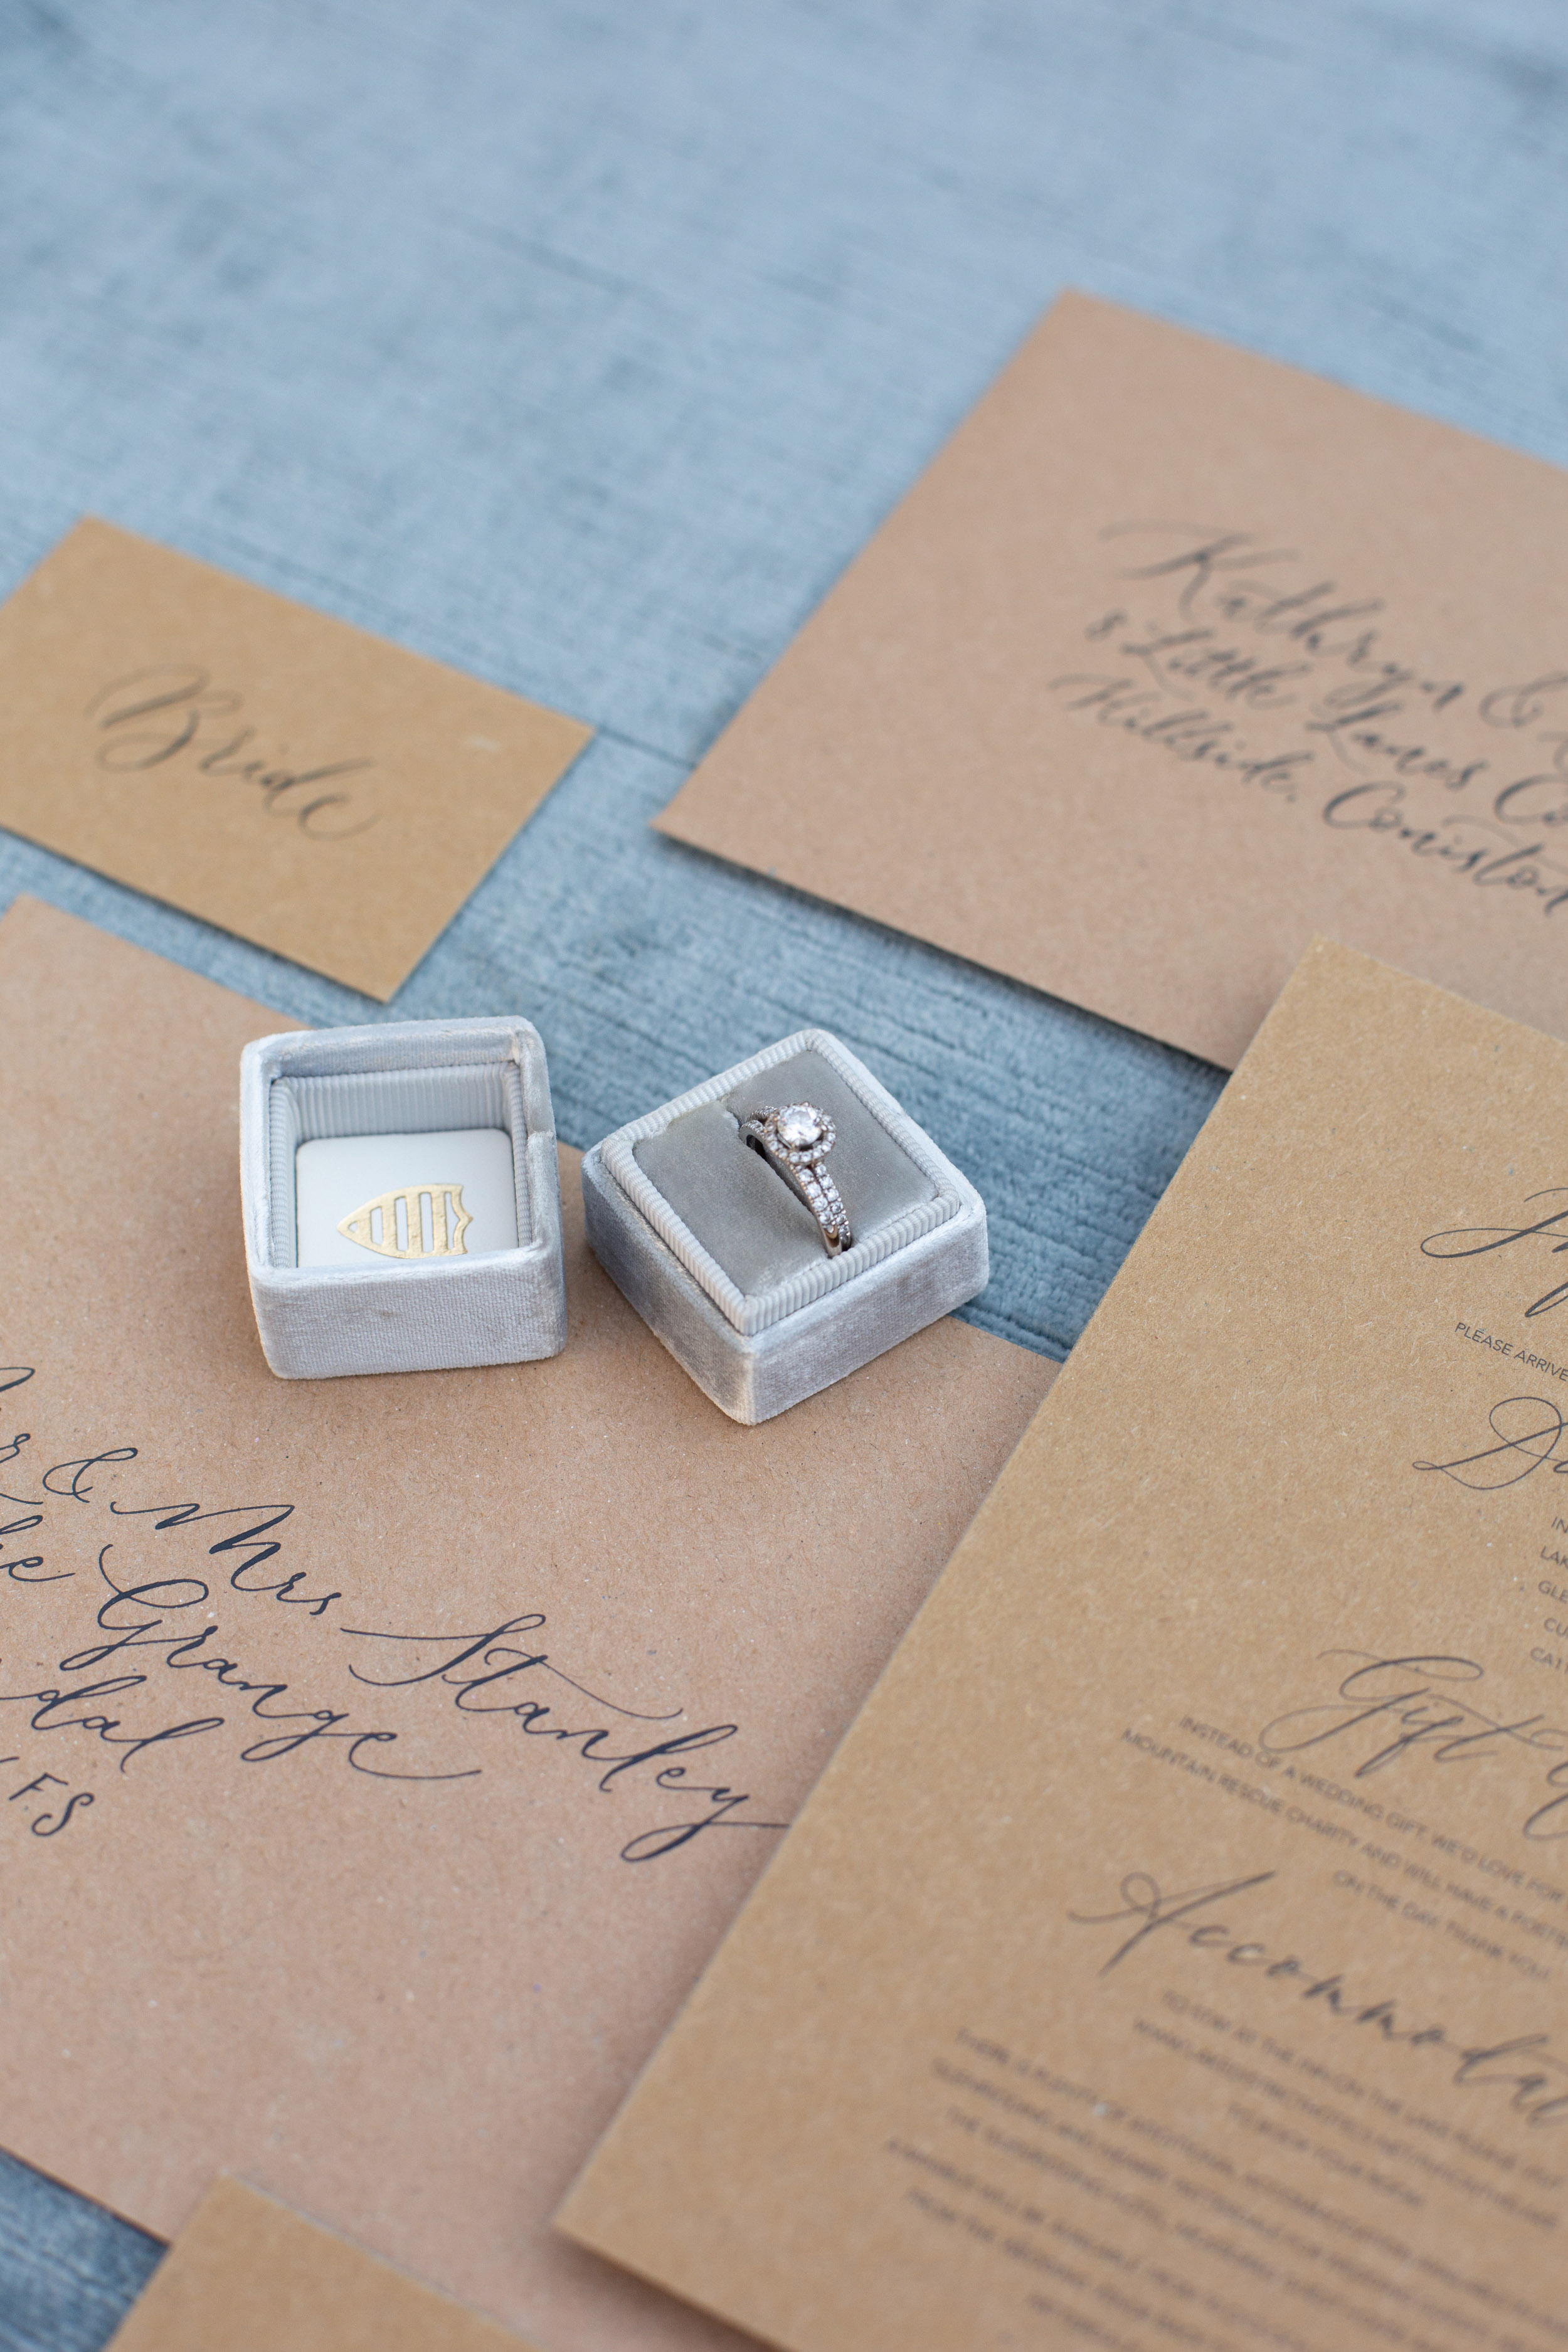 Rustic elegance sustainable wedding stationery from By Moon and Tide Calligraphy, photography credit Jess Reeve (4)